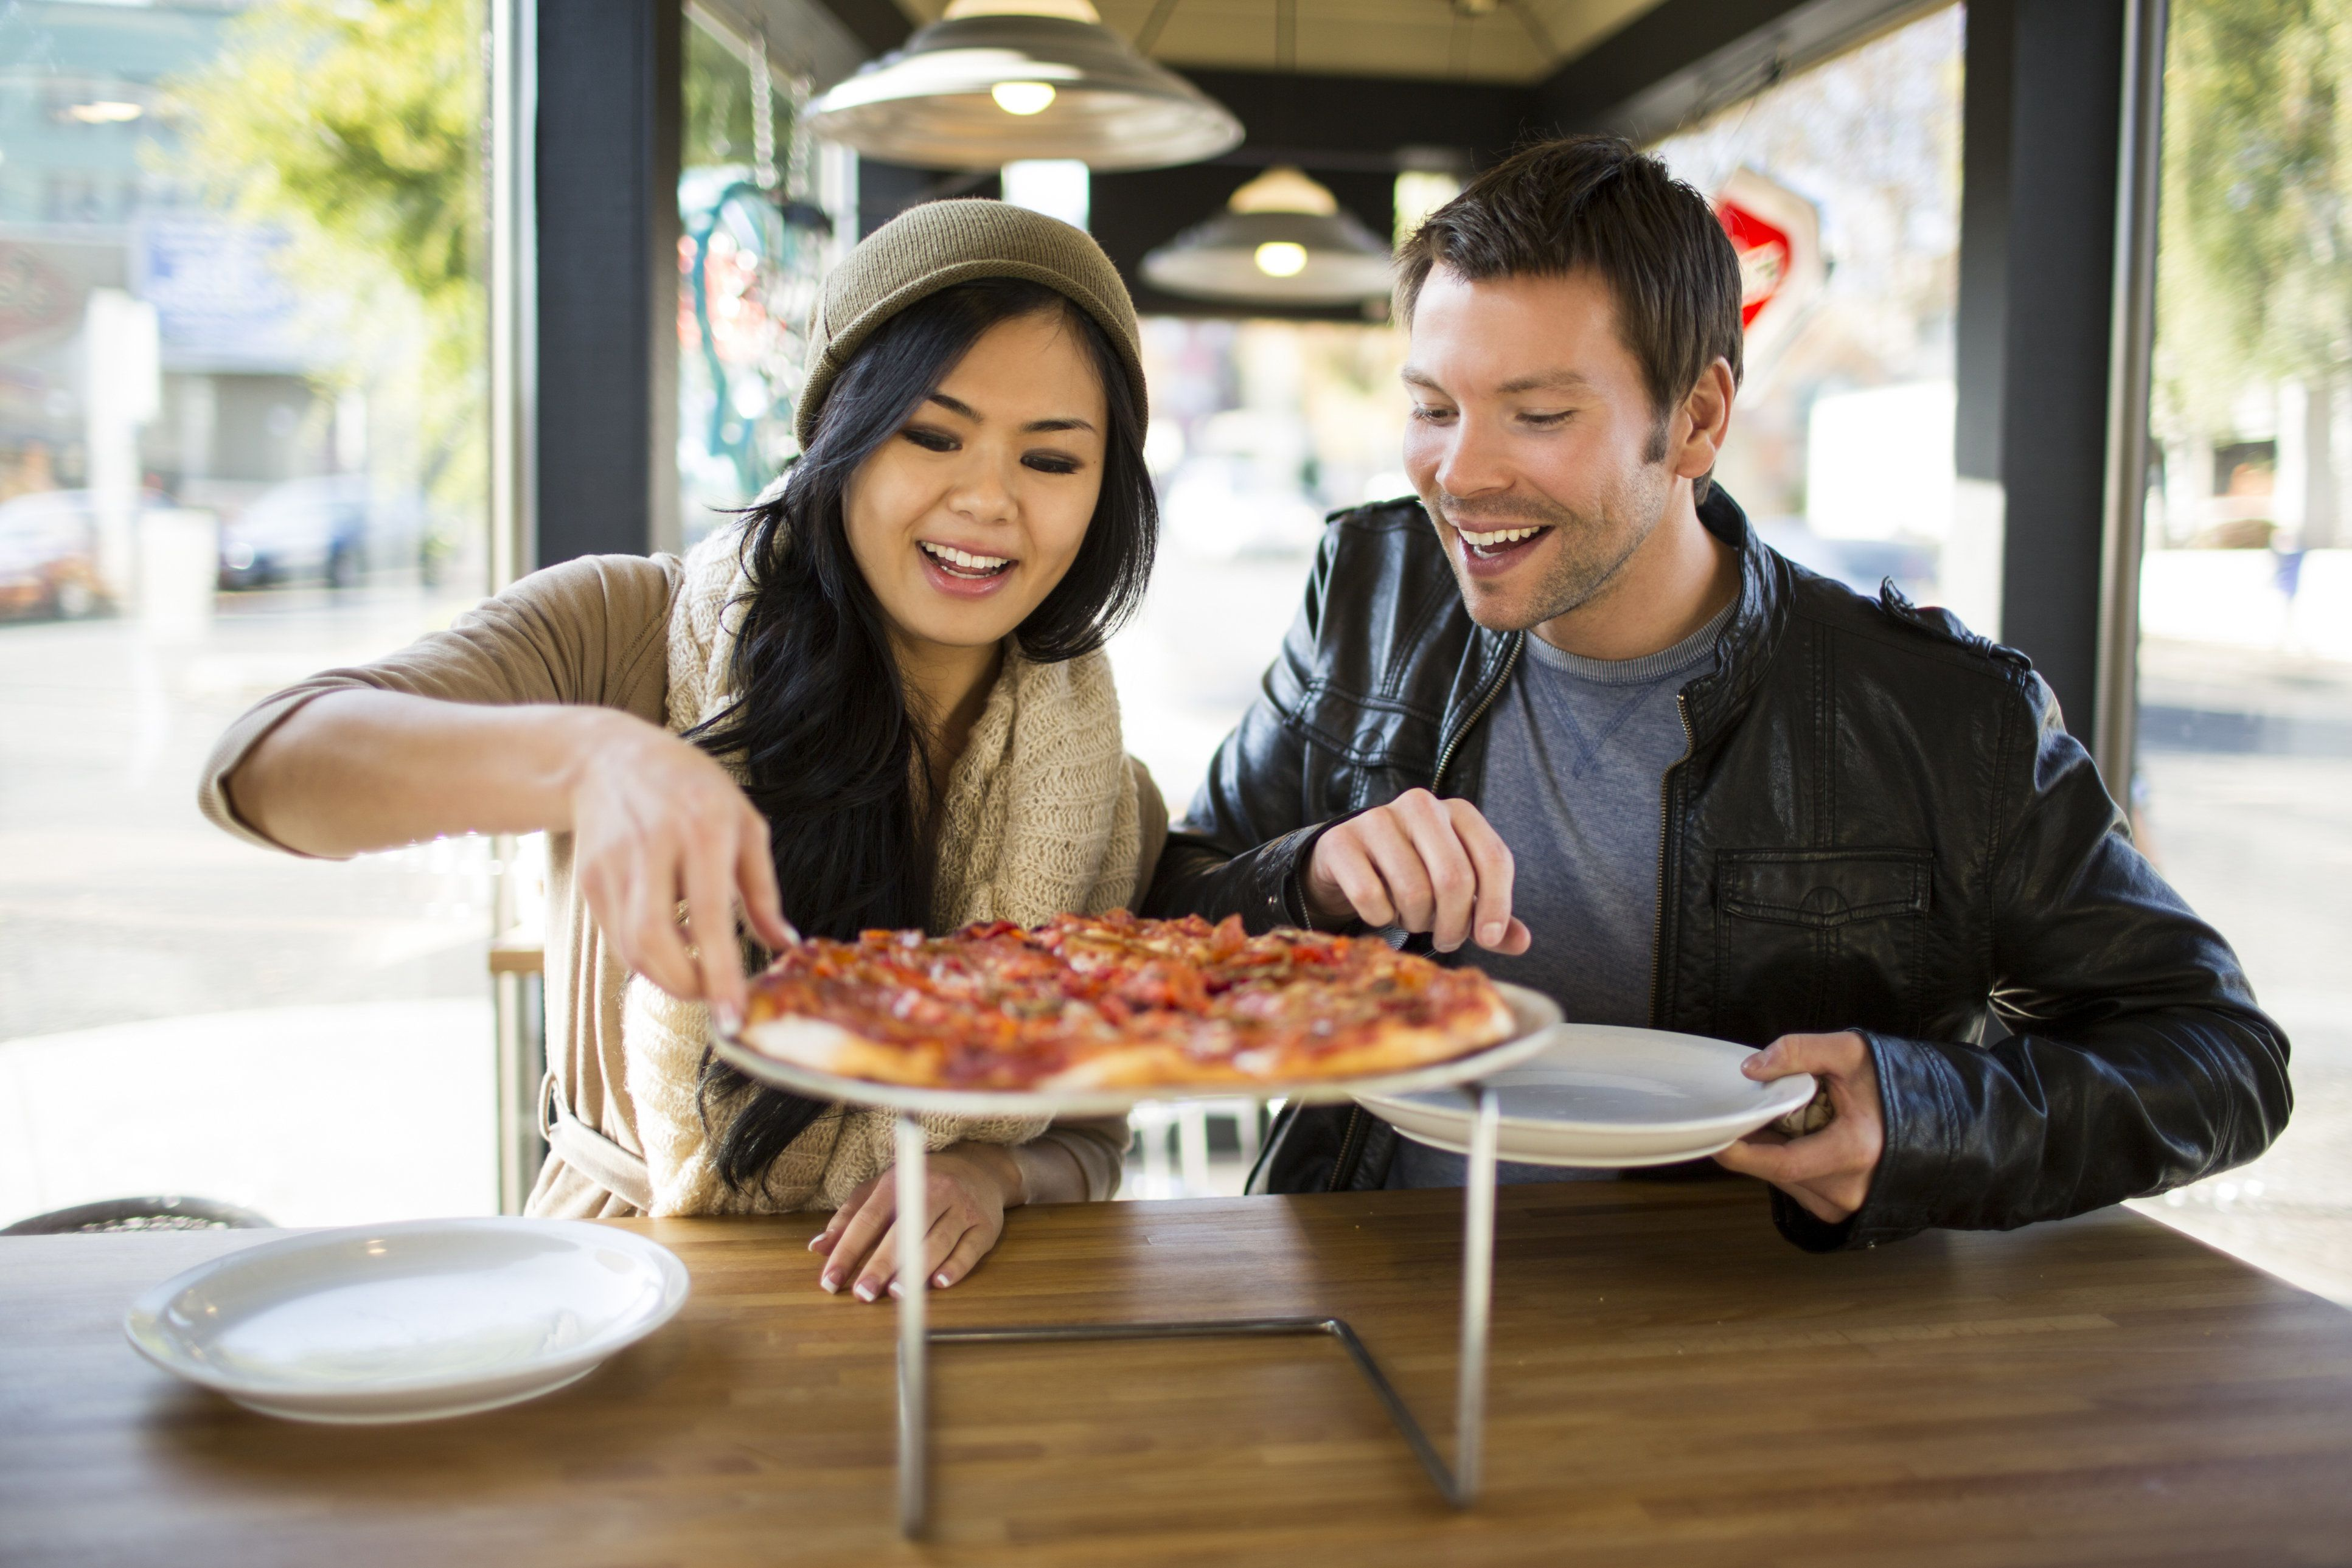 U.S. restaurant owners have five extra months to post the calorie counts of their food.